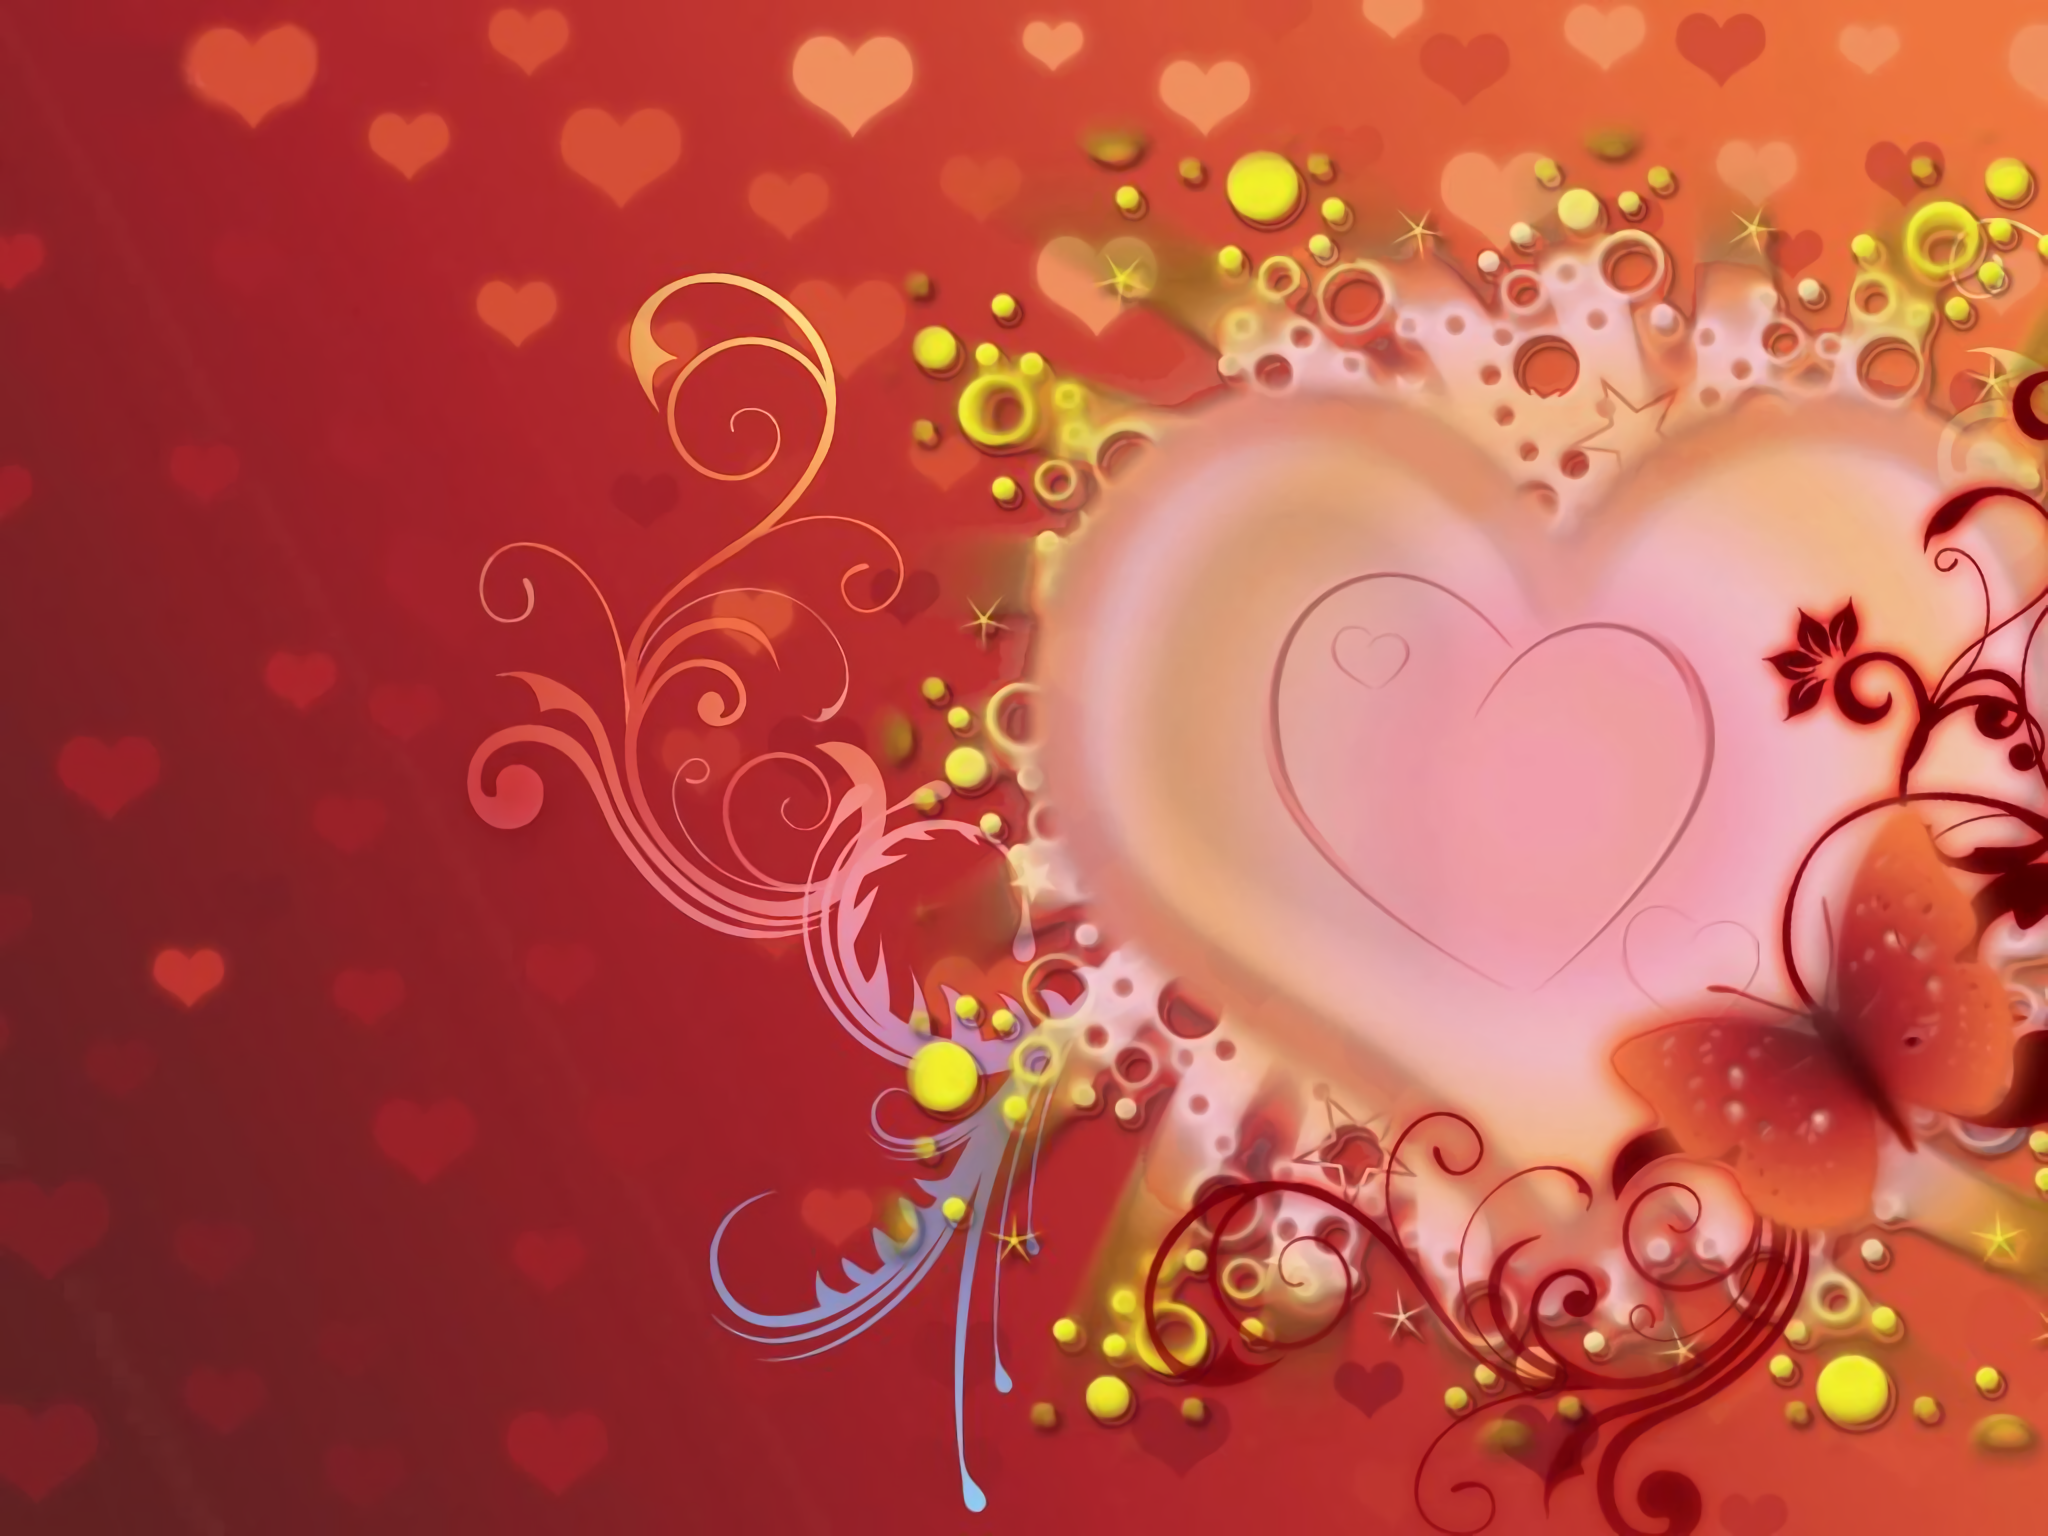 abstract heart full hd wallpaper and background image | 2048x1536